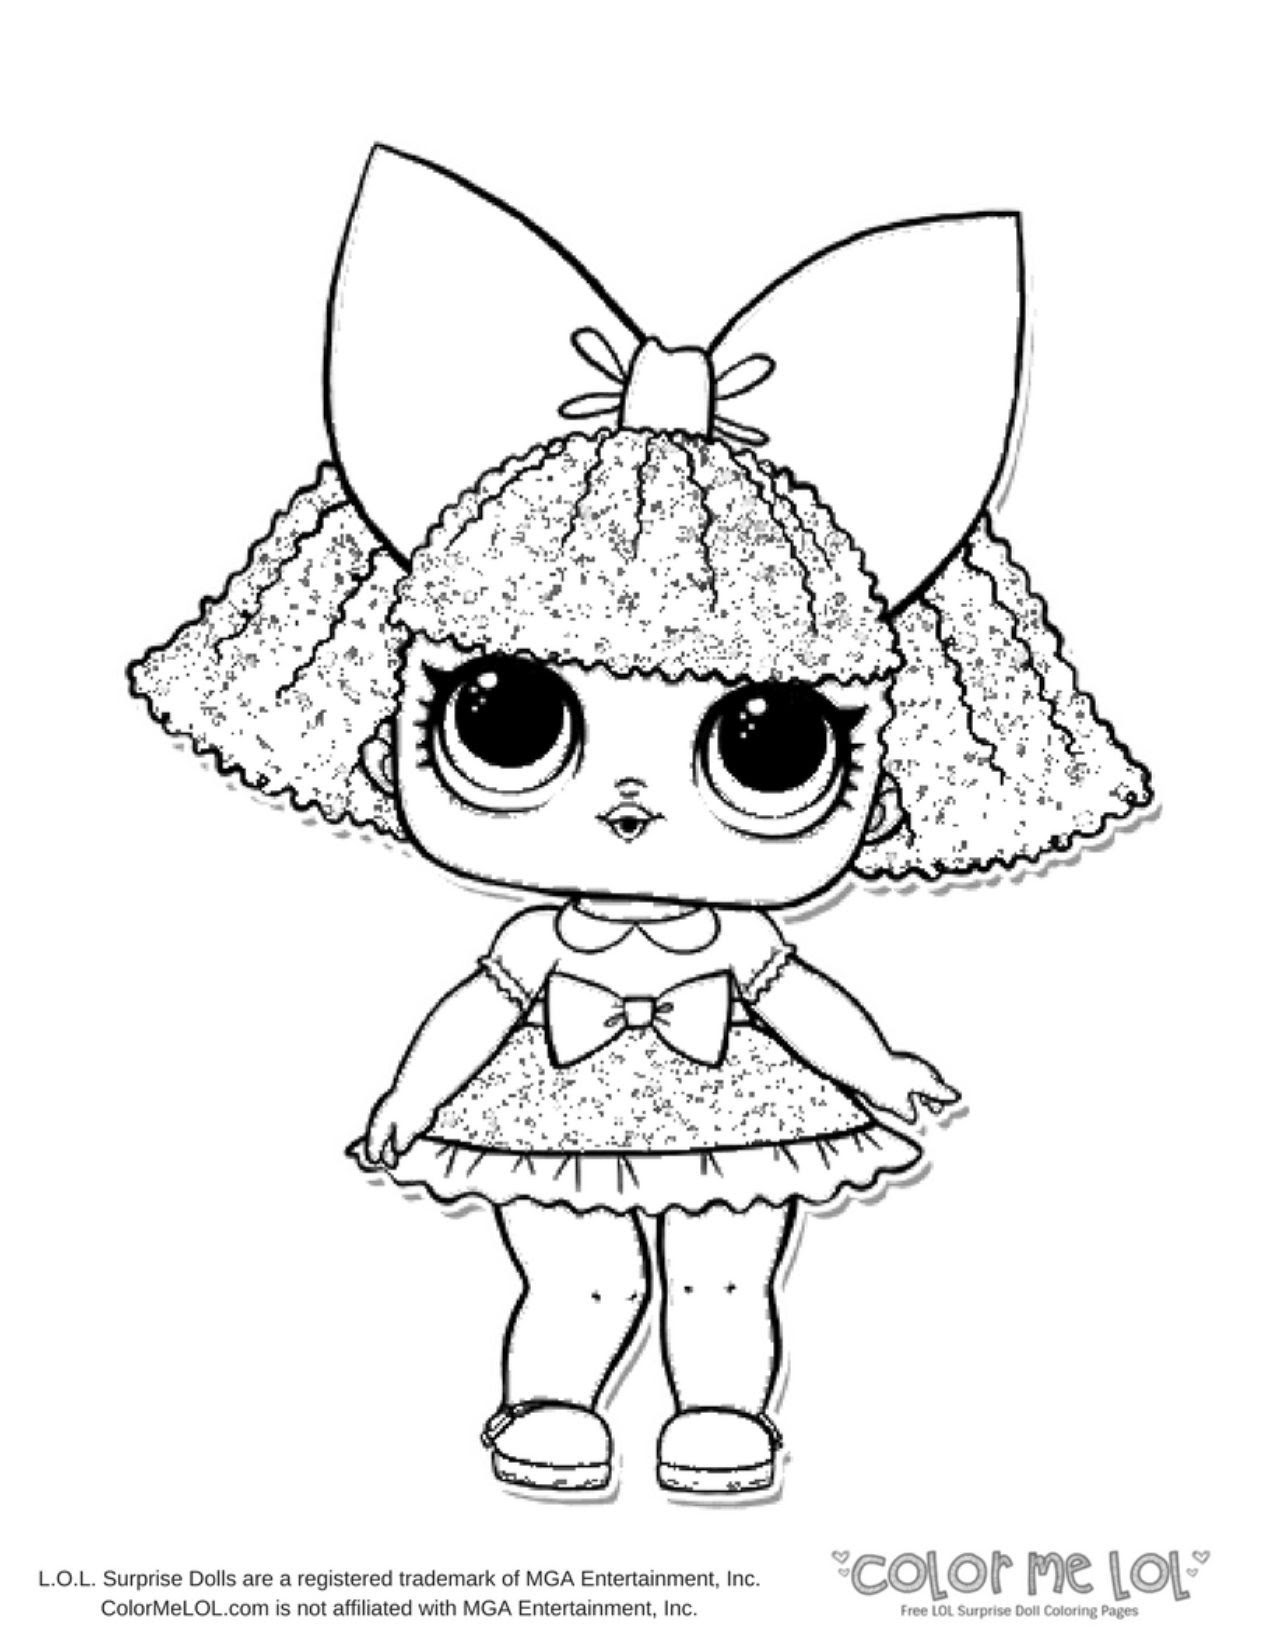 Apollinaire Leanna - Free Coloring Pages: Lol Under Wraps Coloring Pages